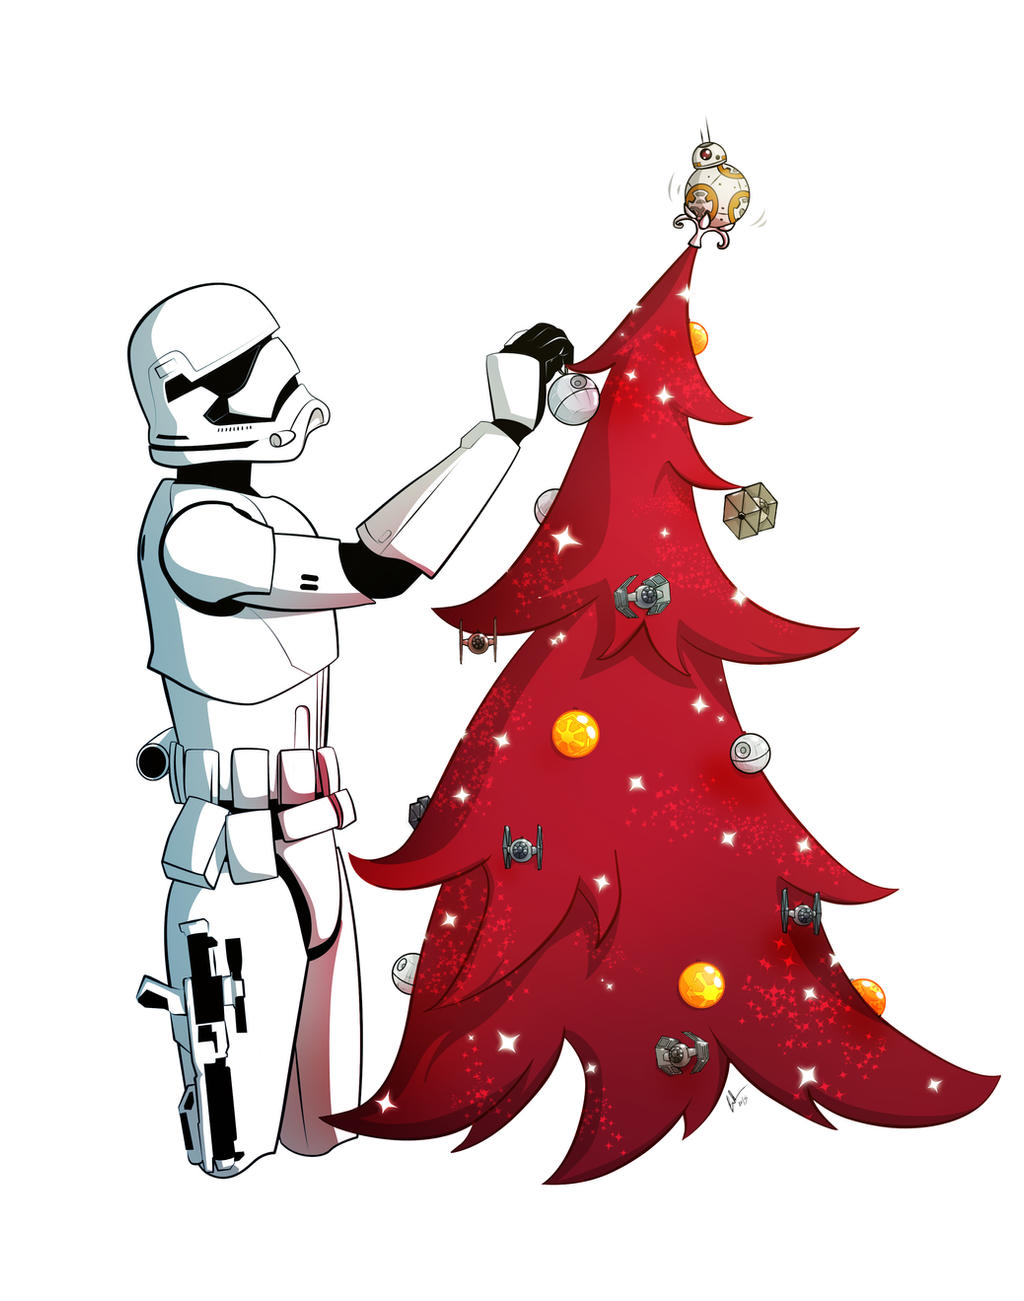 A merry Star Wars Christmas... by KiloWhat on DeviantArt